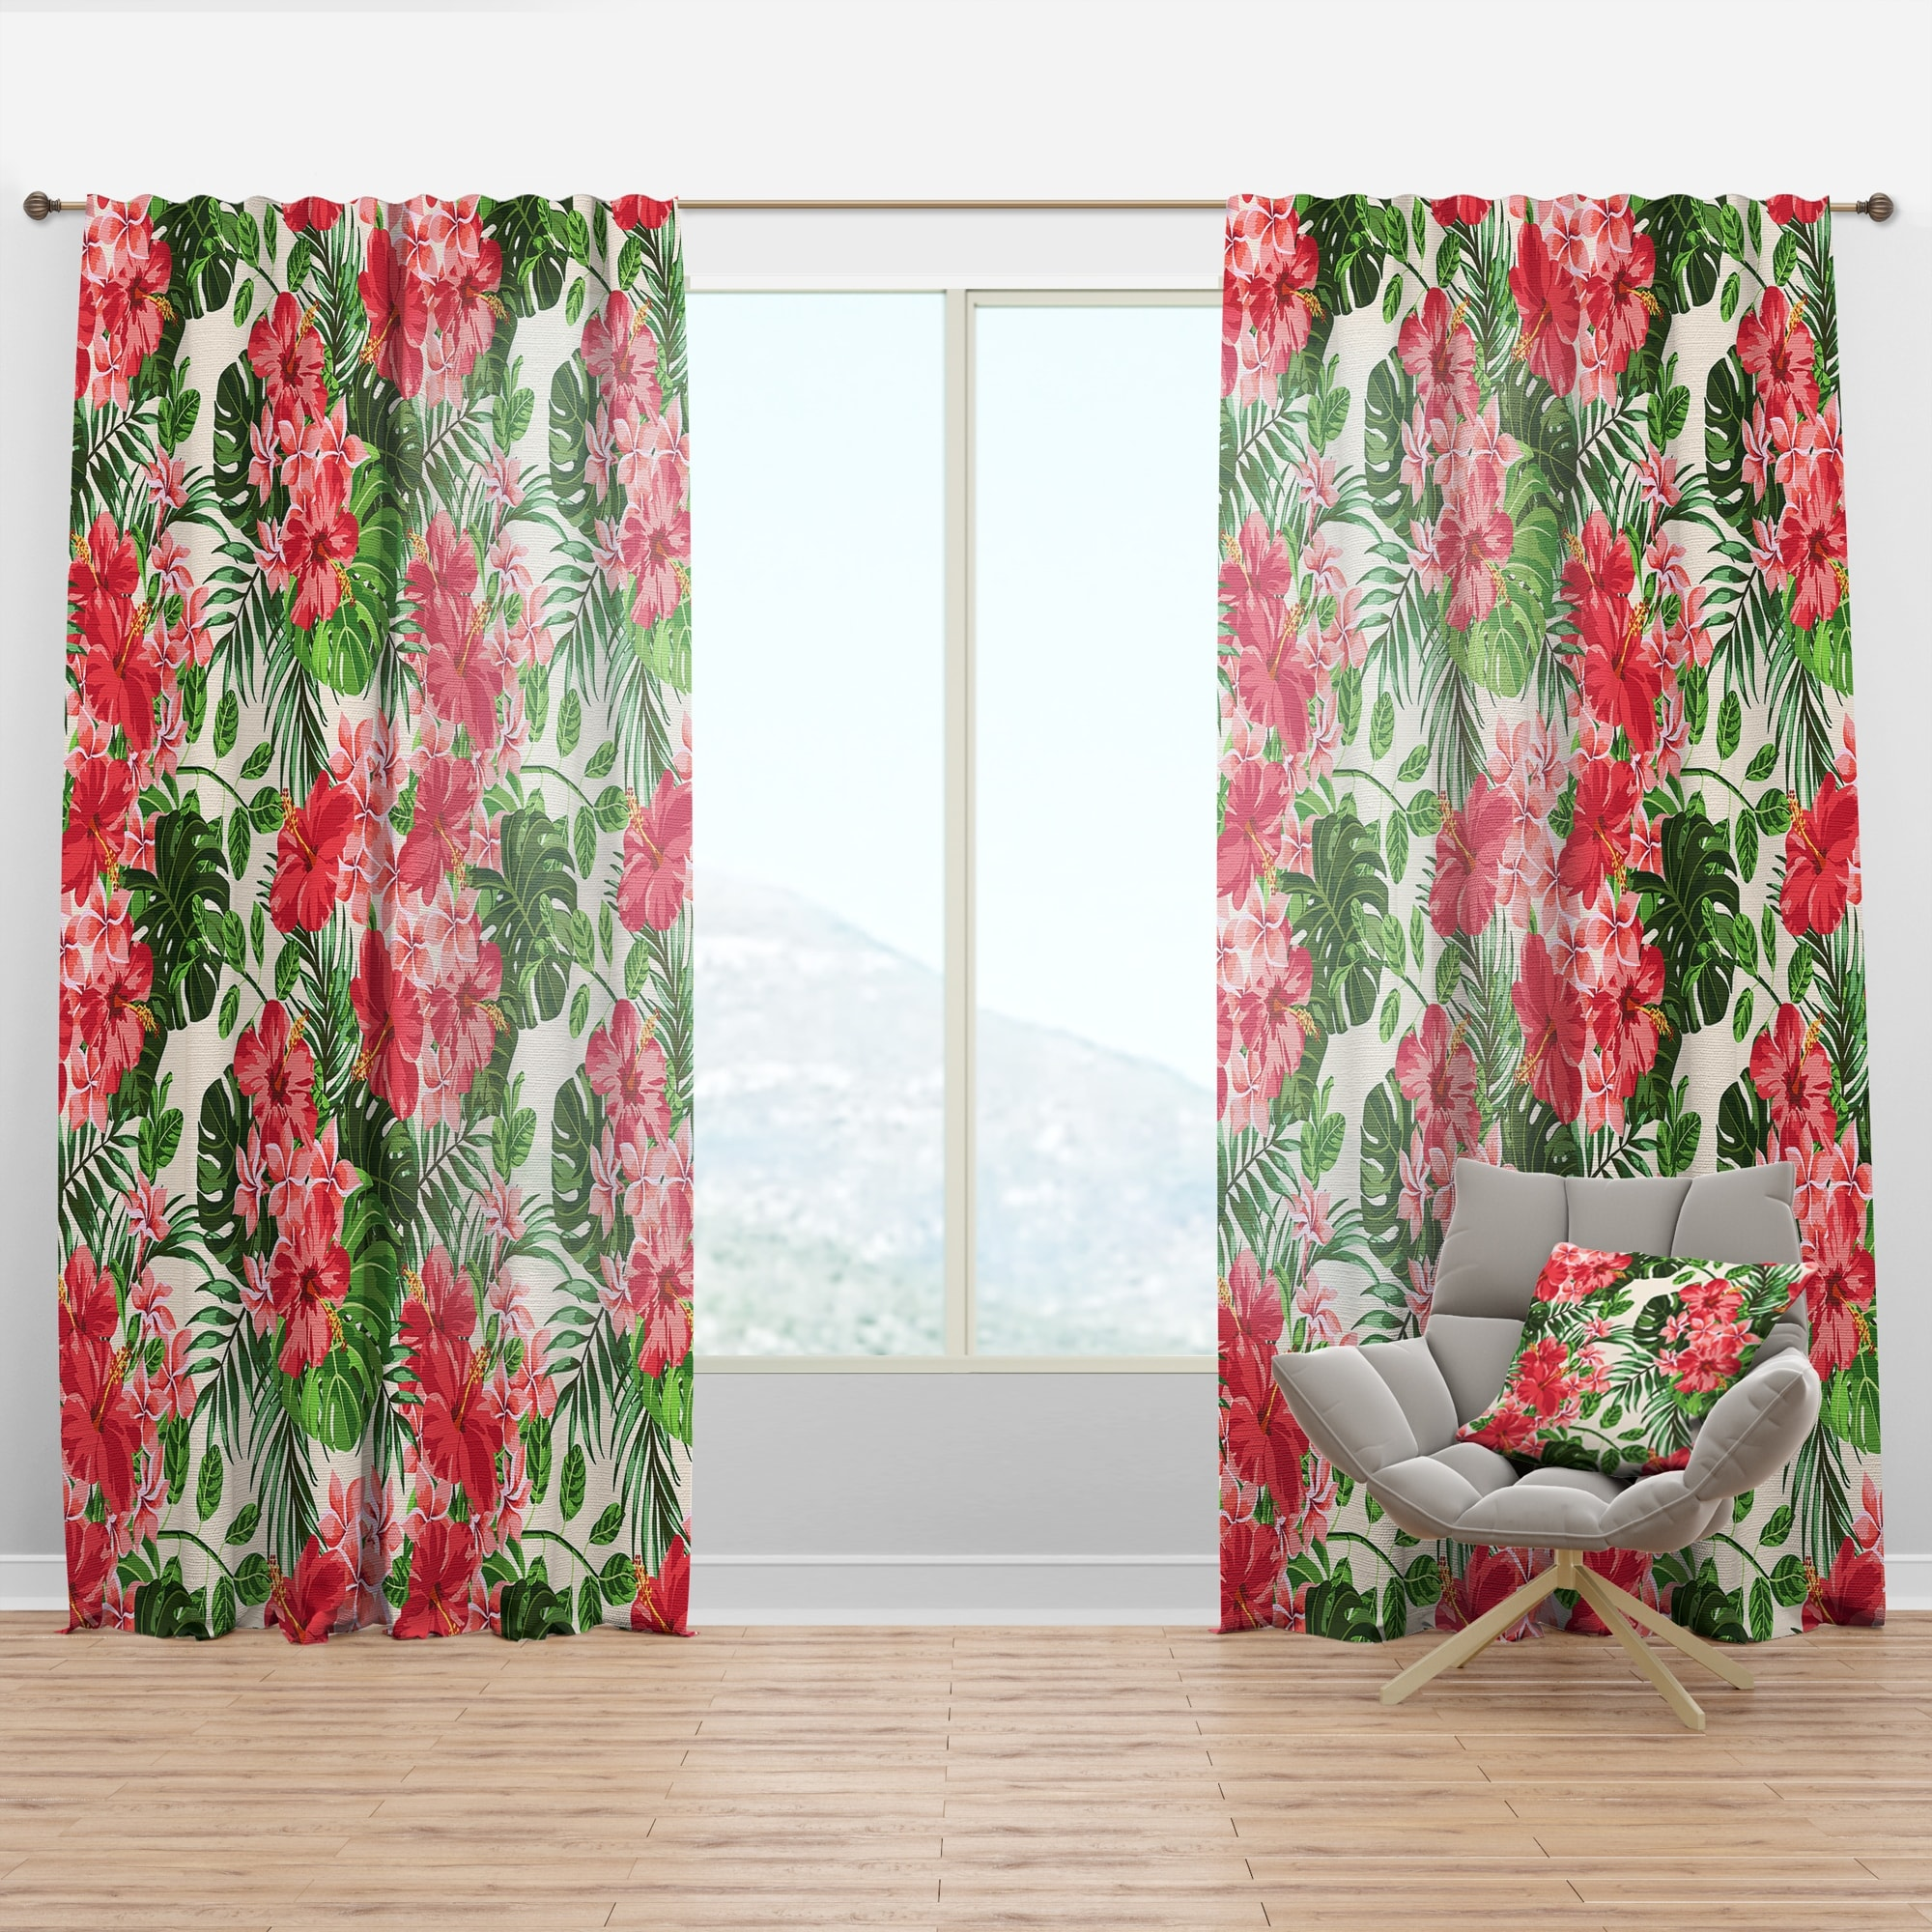 Designart Tropical Leaves And Flowers I Mid Century Modern Curtain Panel Overstock 29626089